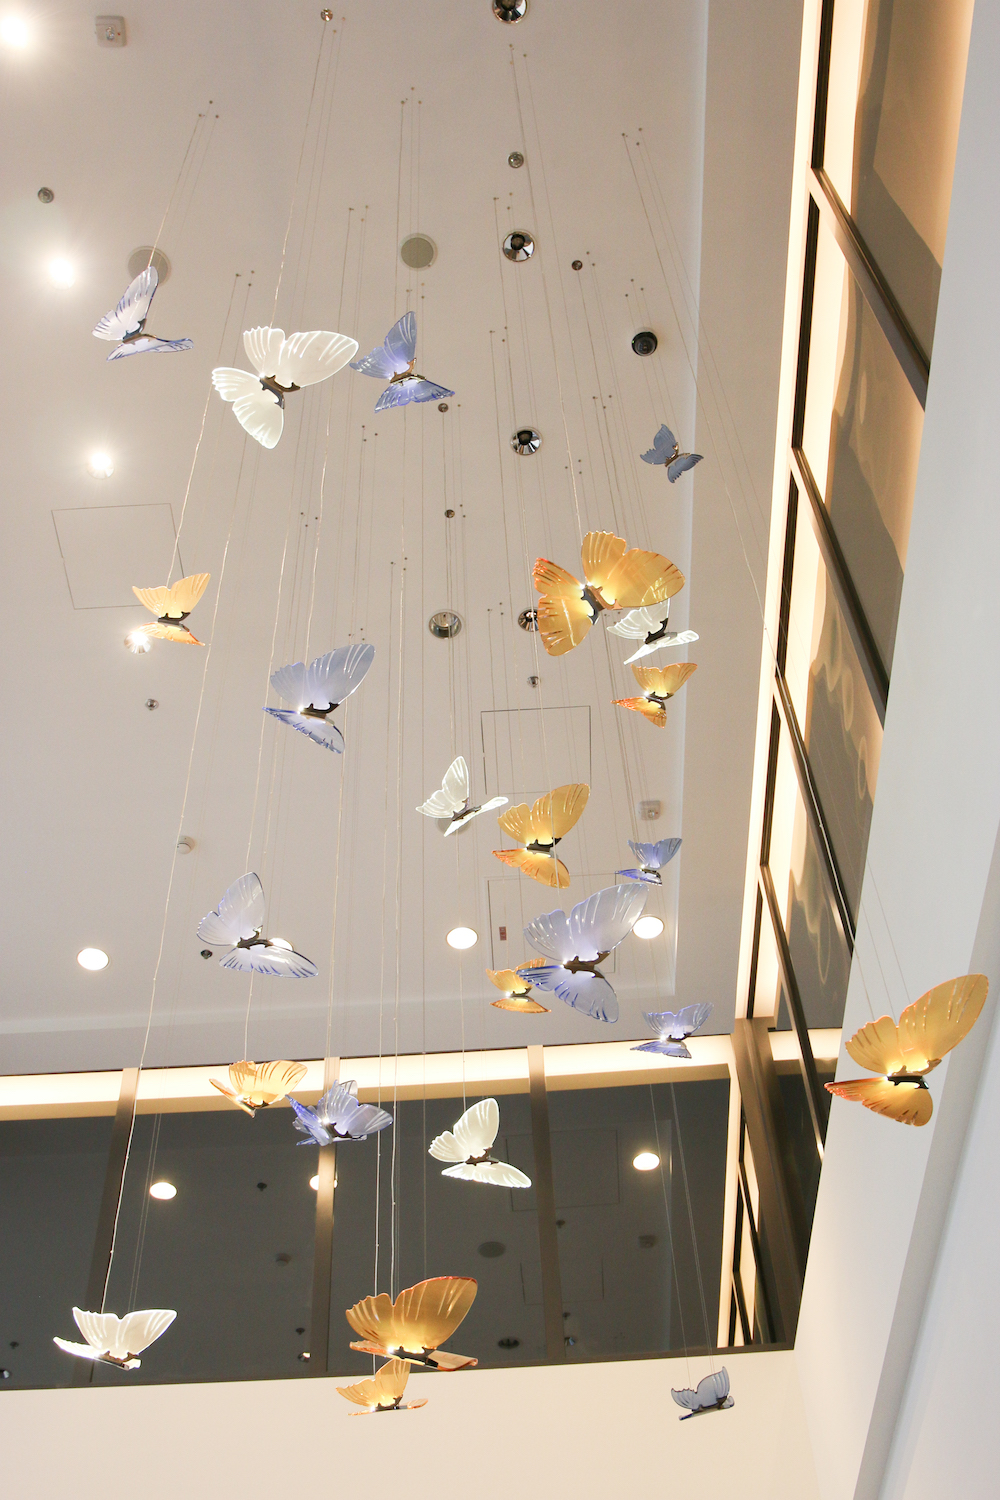 butterfly-art-marriott-hotel-taipei